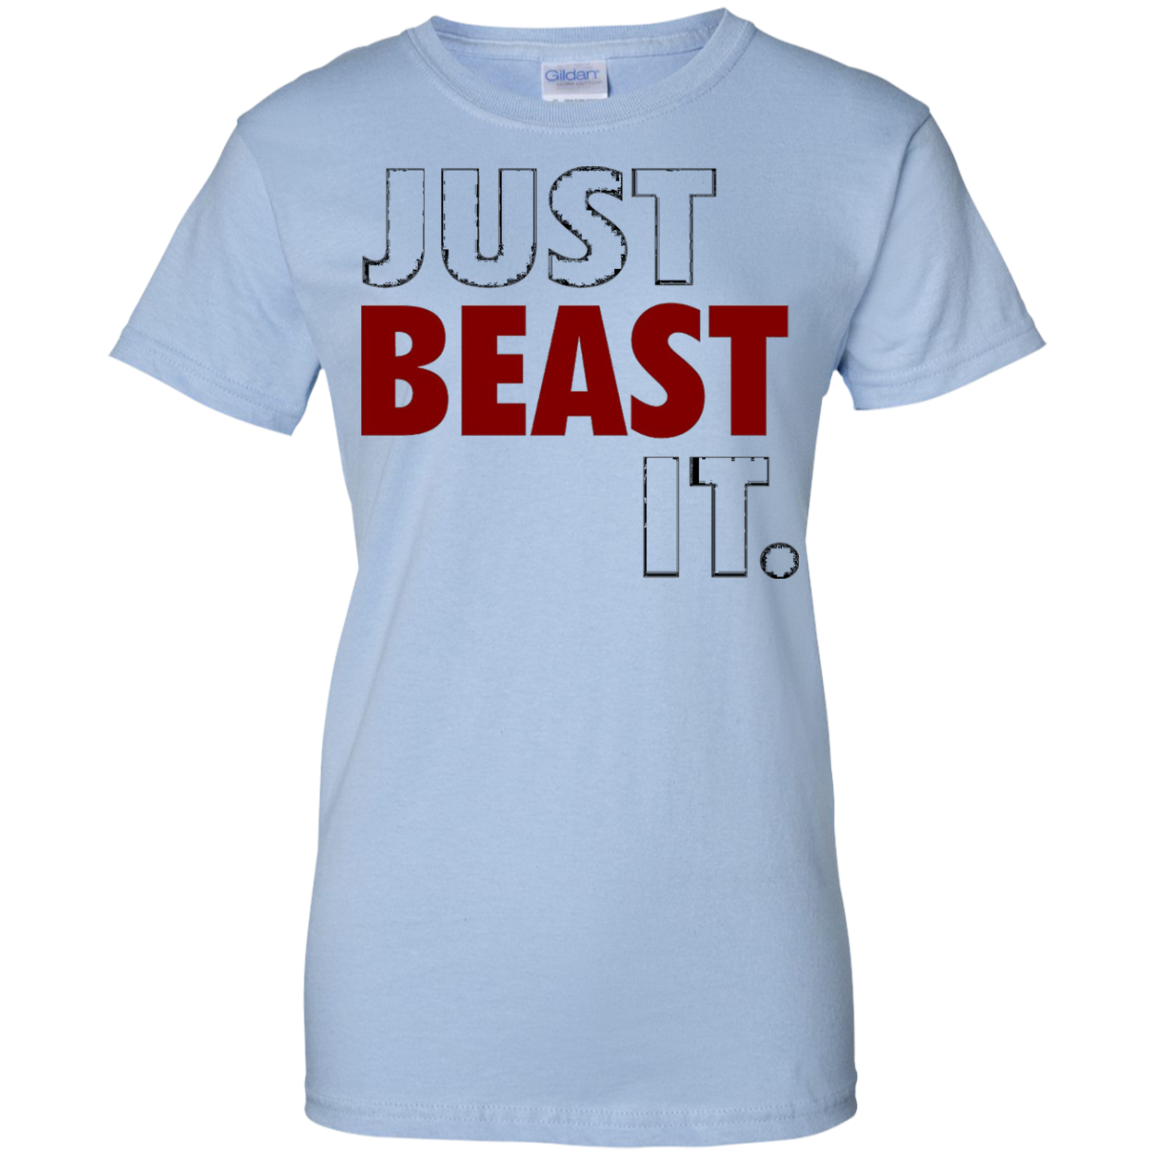 Just Beast It Motivational T Shirt by My Motivo